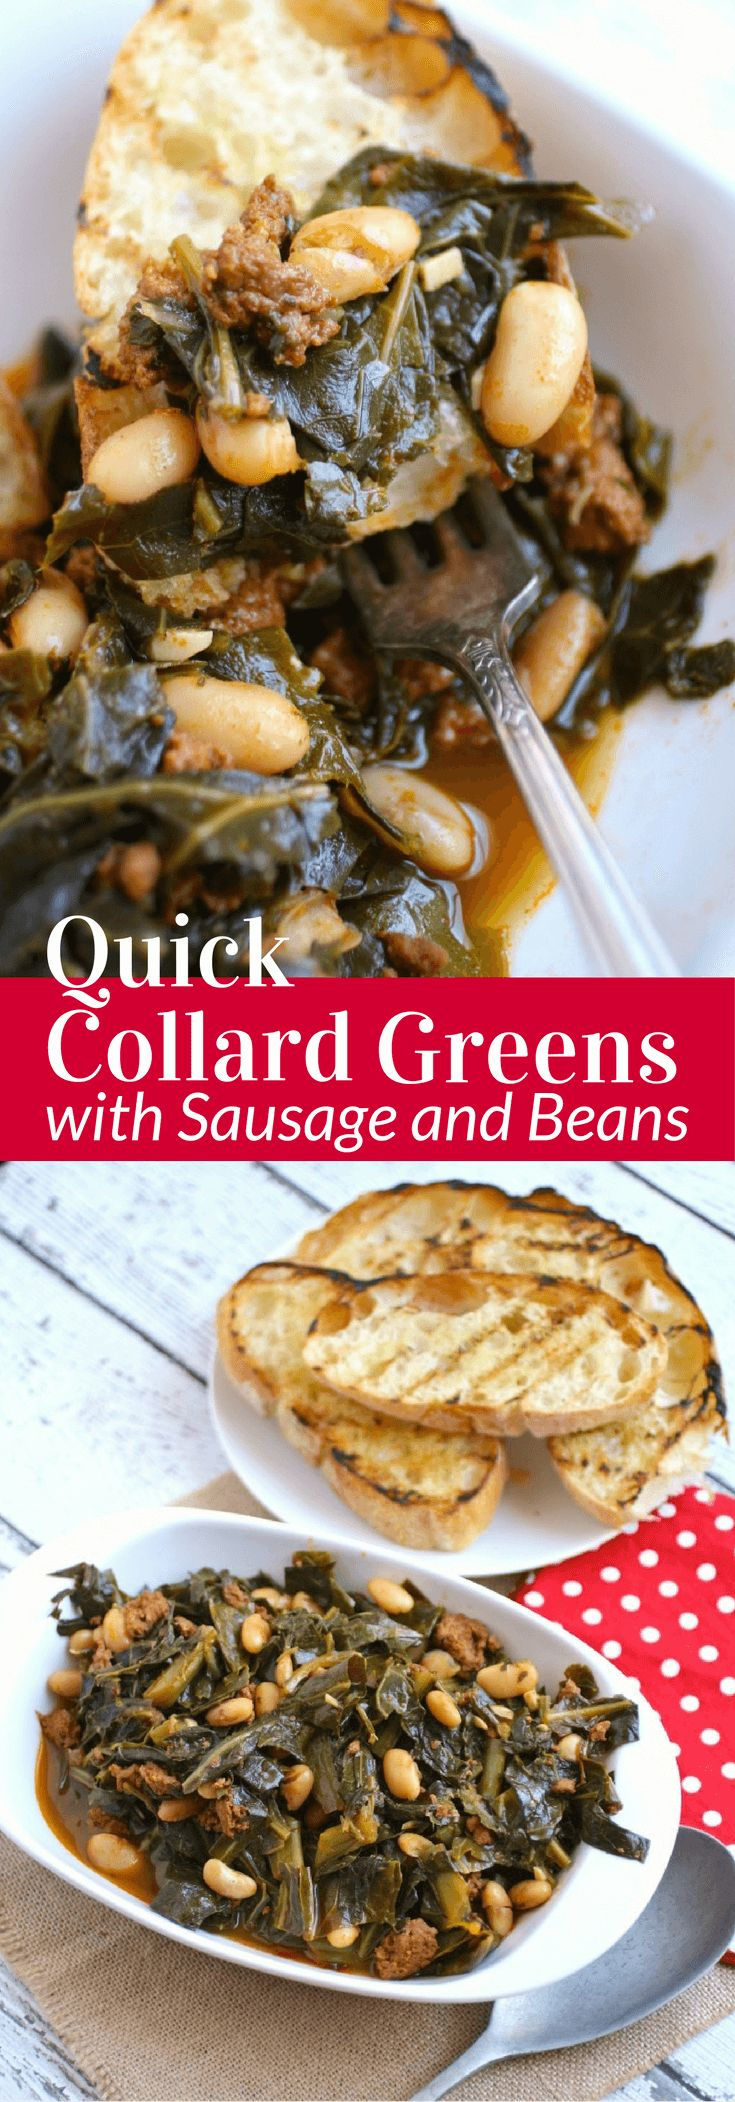 What will you be eating on New Year's Day? My family, as well as my husband's, has always included greens of some sort on the menu. This recipe for Quick Collard Greens with Sausage and Beans is a relatively new tradition in my home, and we love it!